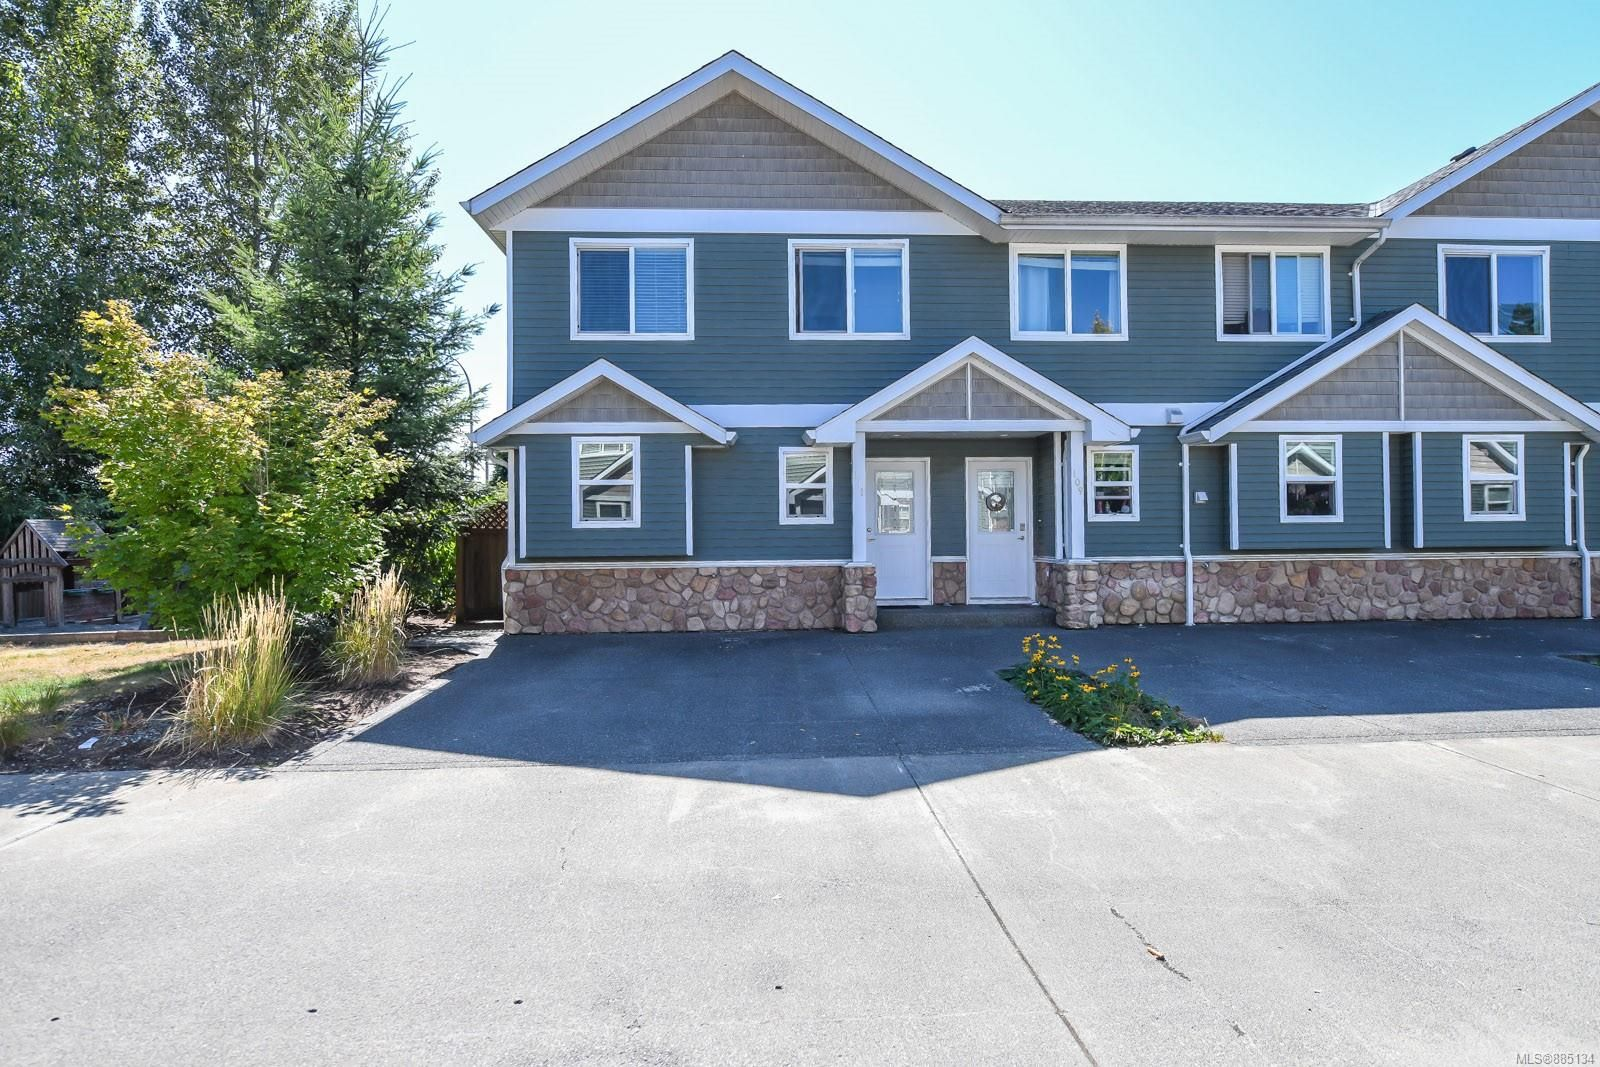 Main Photo: 111 170 Centennial Dr in : CV Courtenay East Row/Townhouse for sale (Comox Valley)  : MLS®# 885134